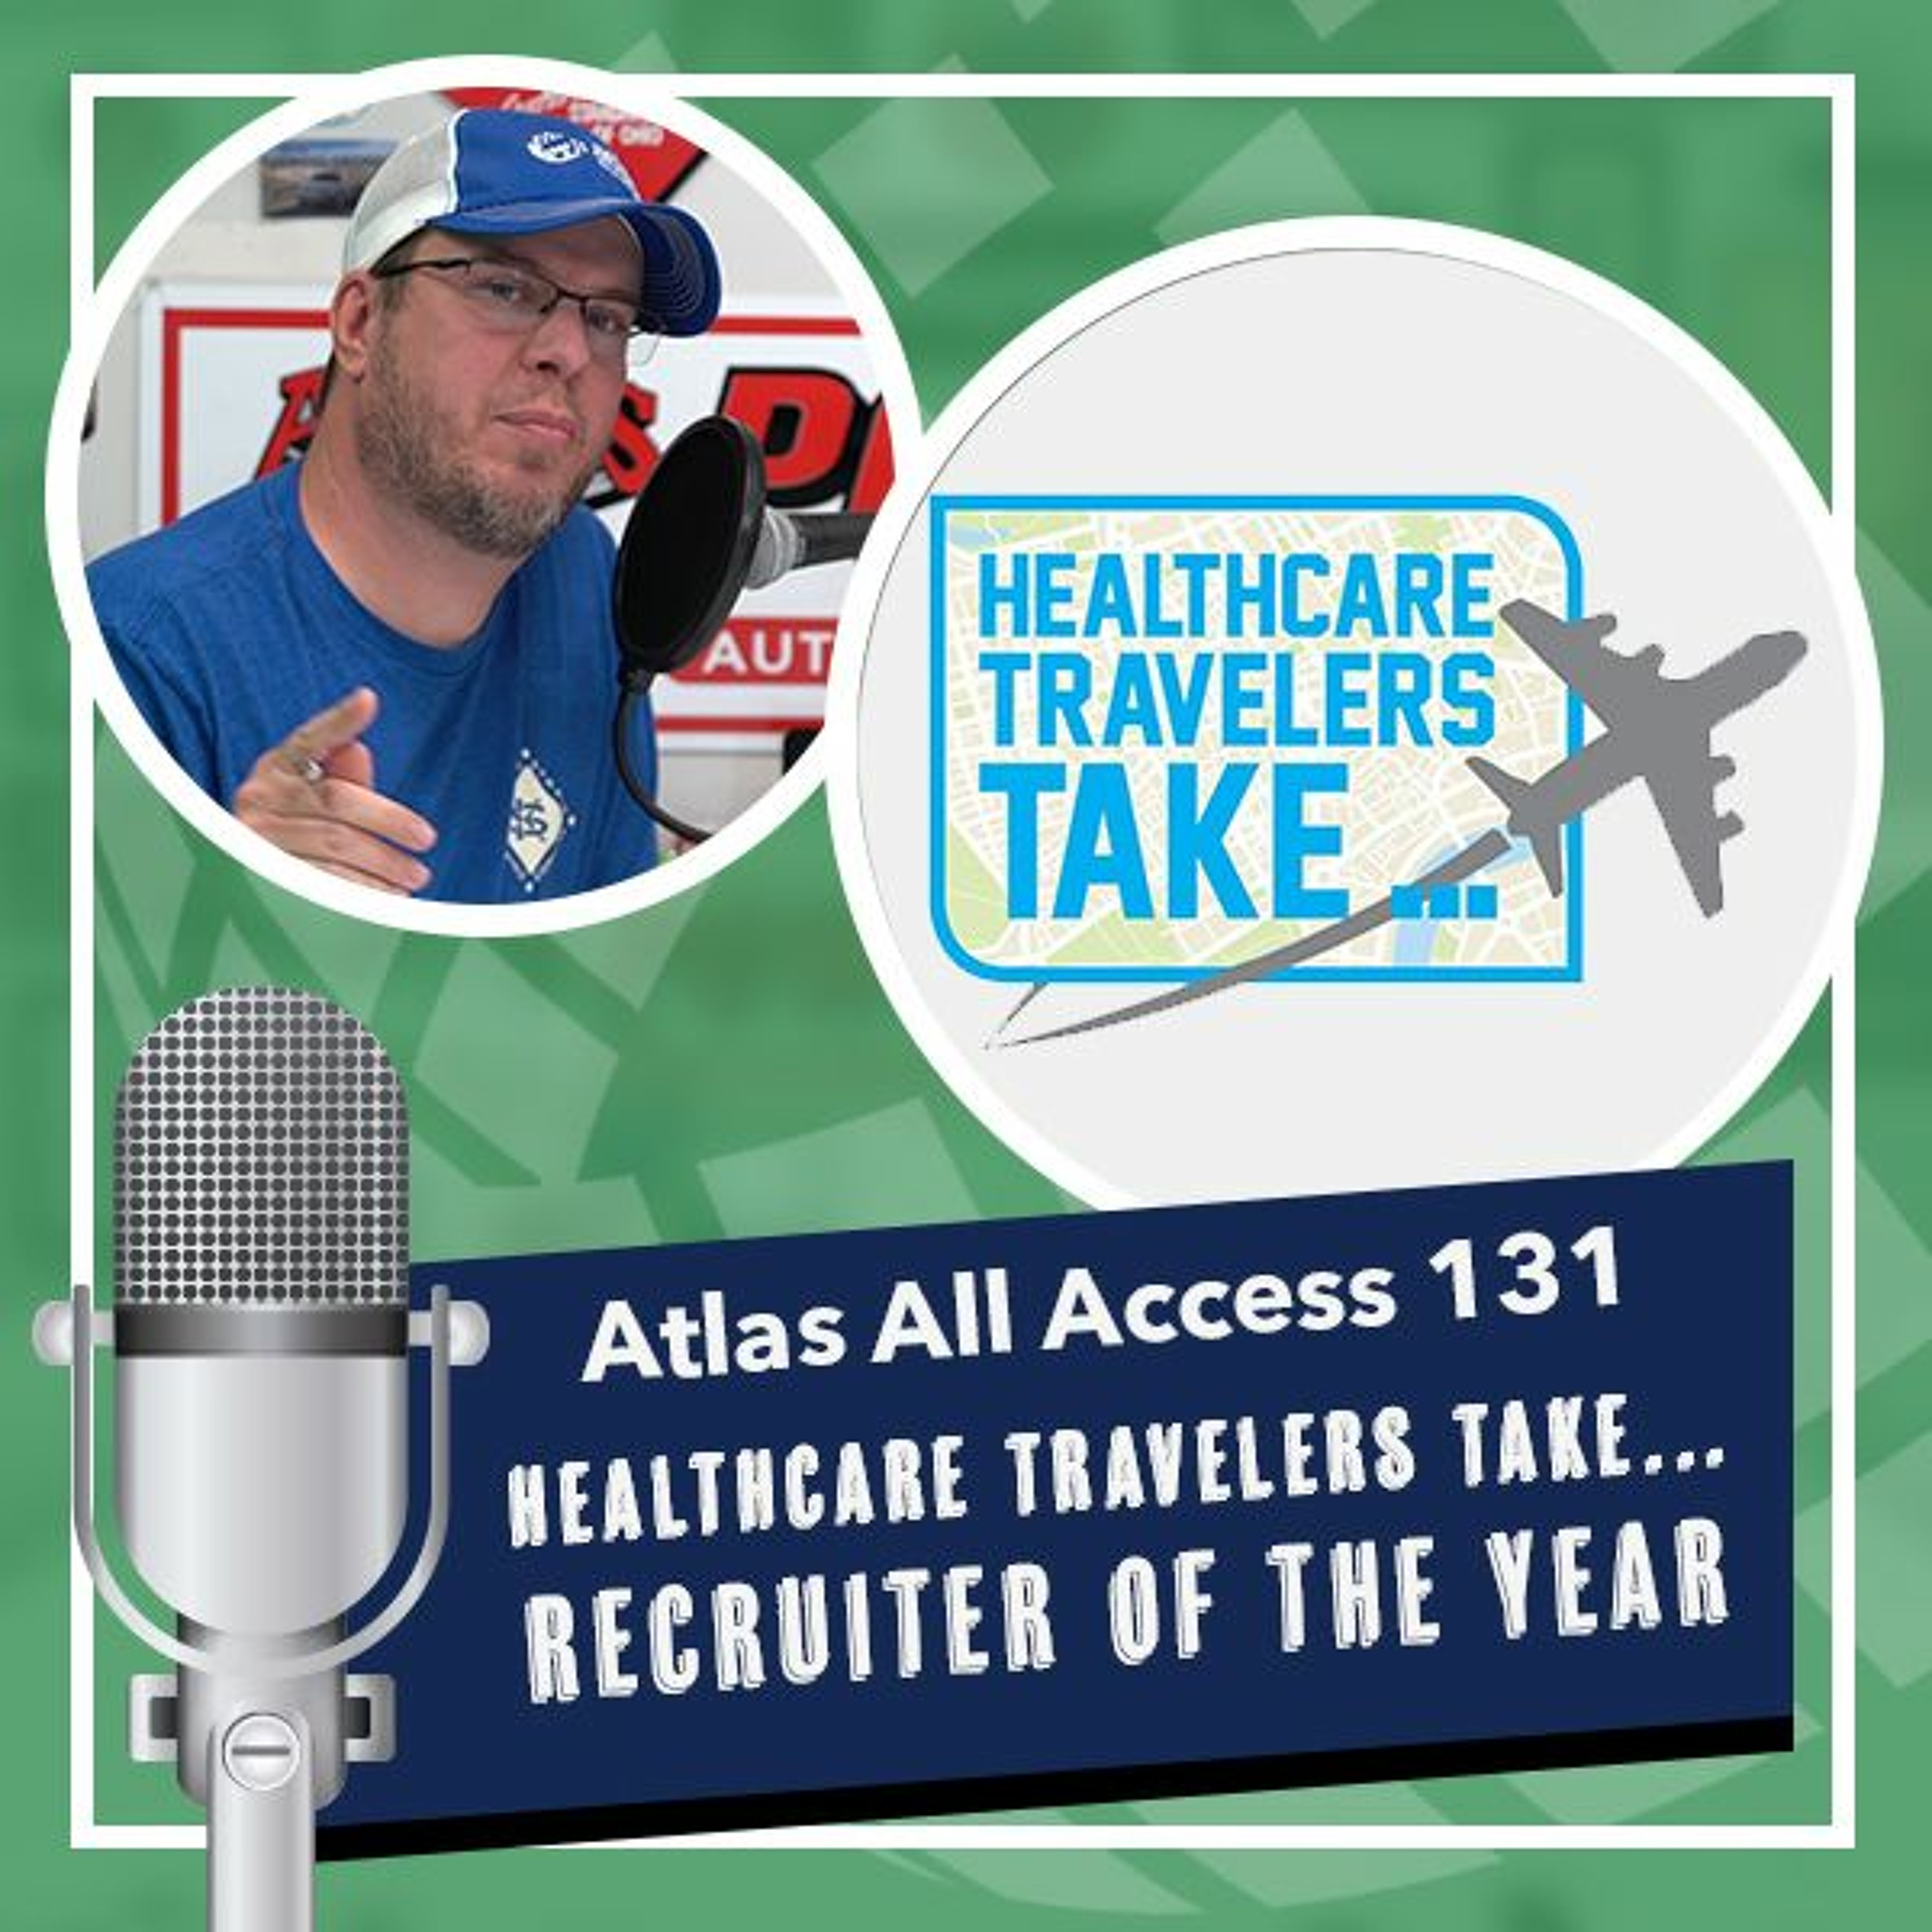 Recruiter of the Year and next year's Healthcare Travelers Take Conference - Atlas All Access 131